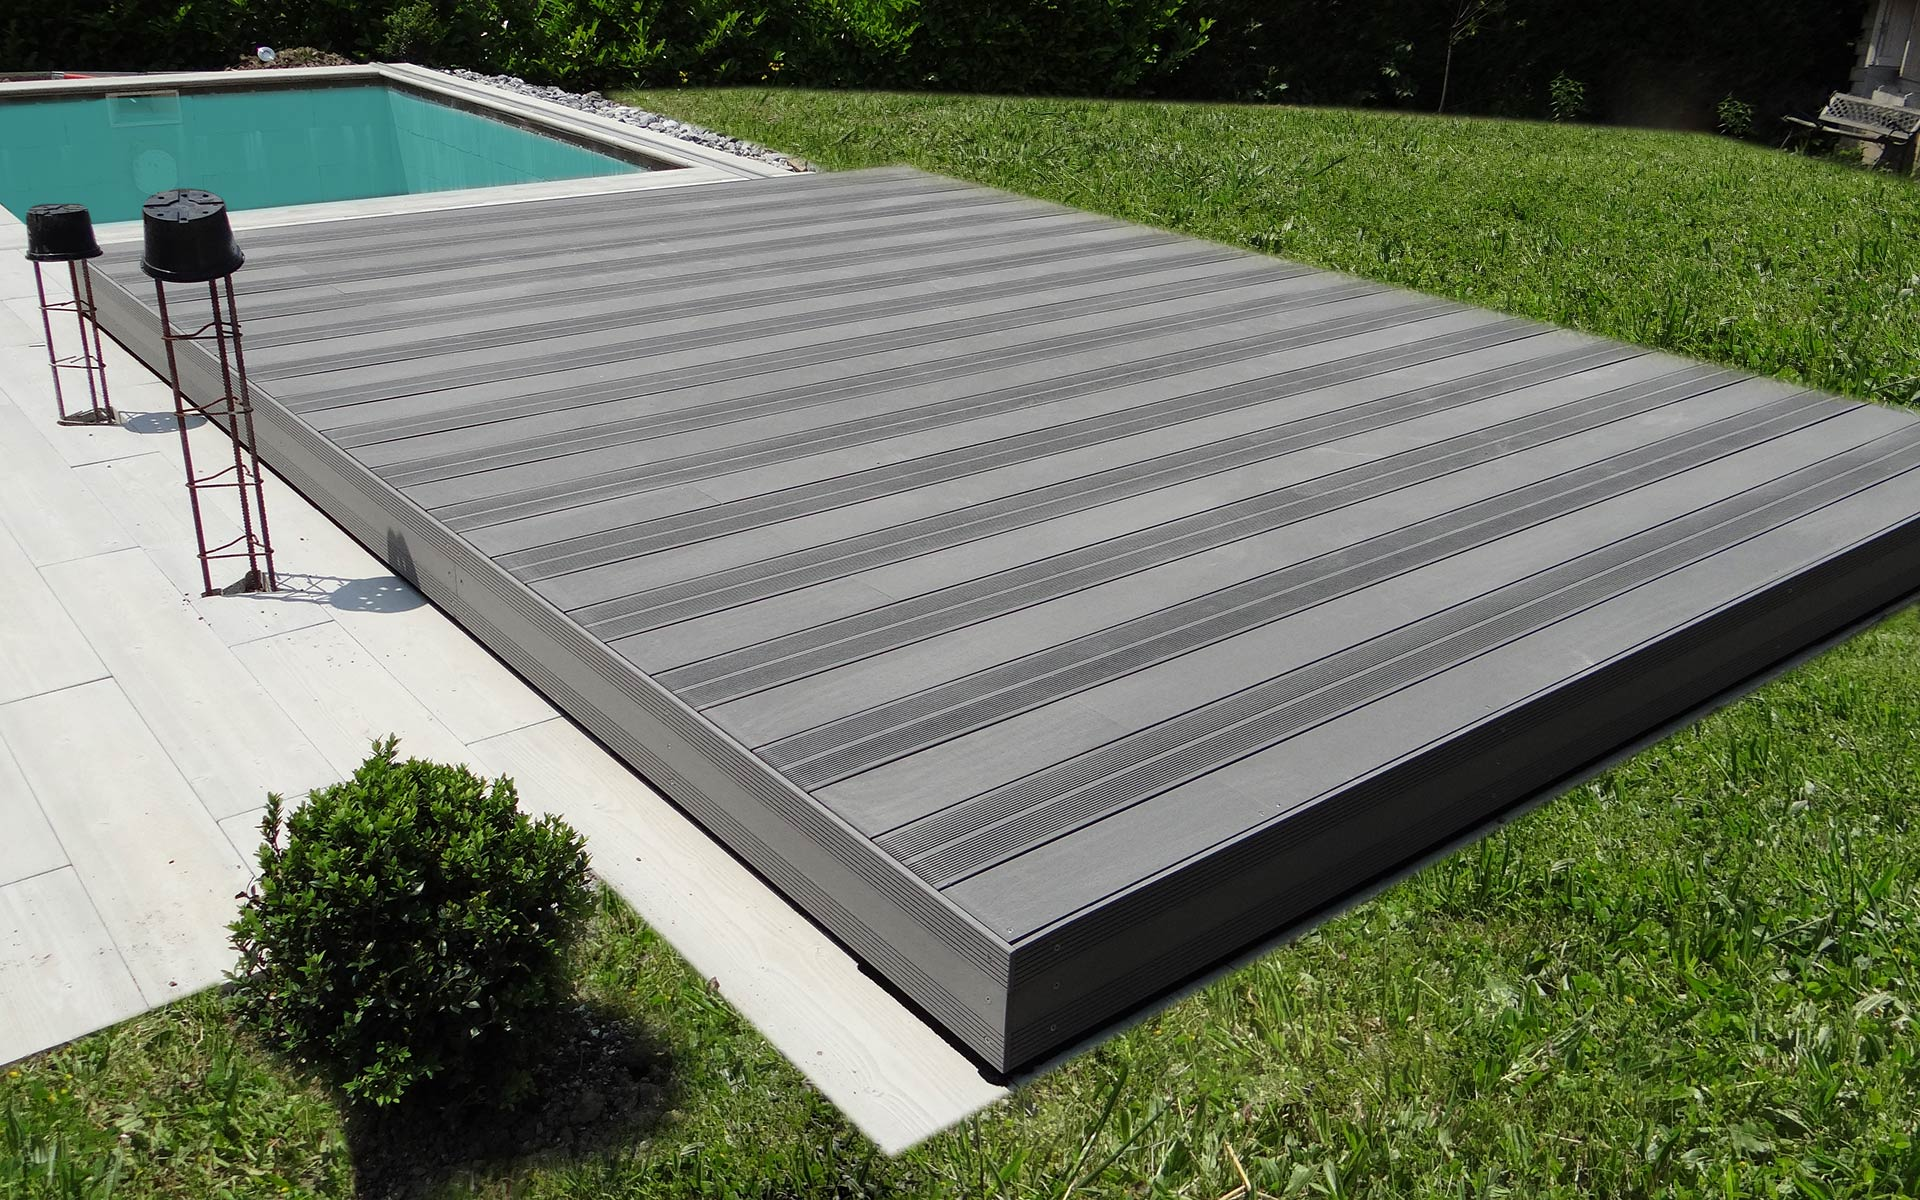 Terrasse mobile pour piscine hidden pool fond mobile - Abri de terrasse coulissant ...